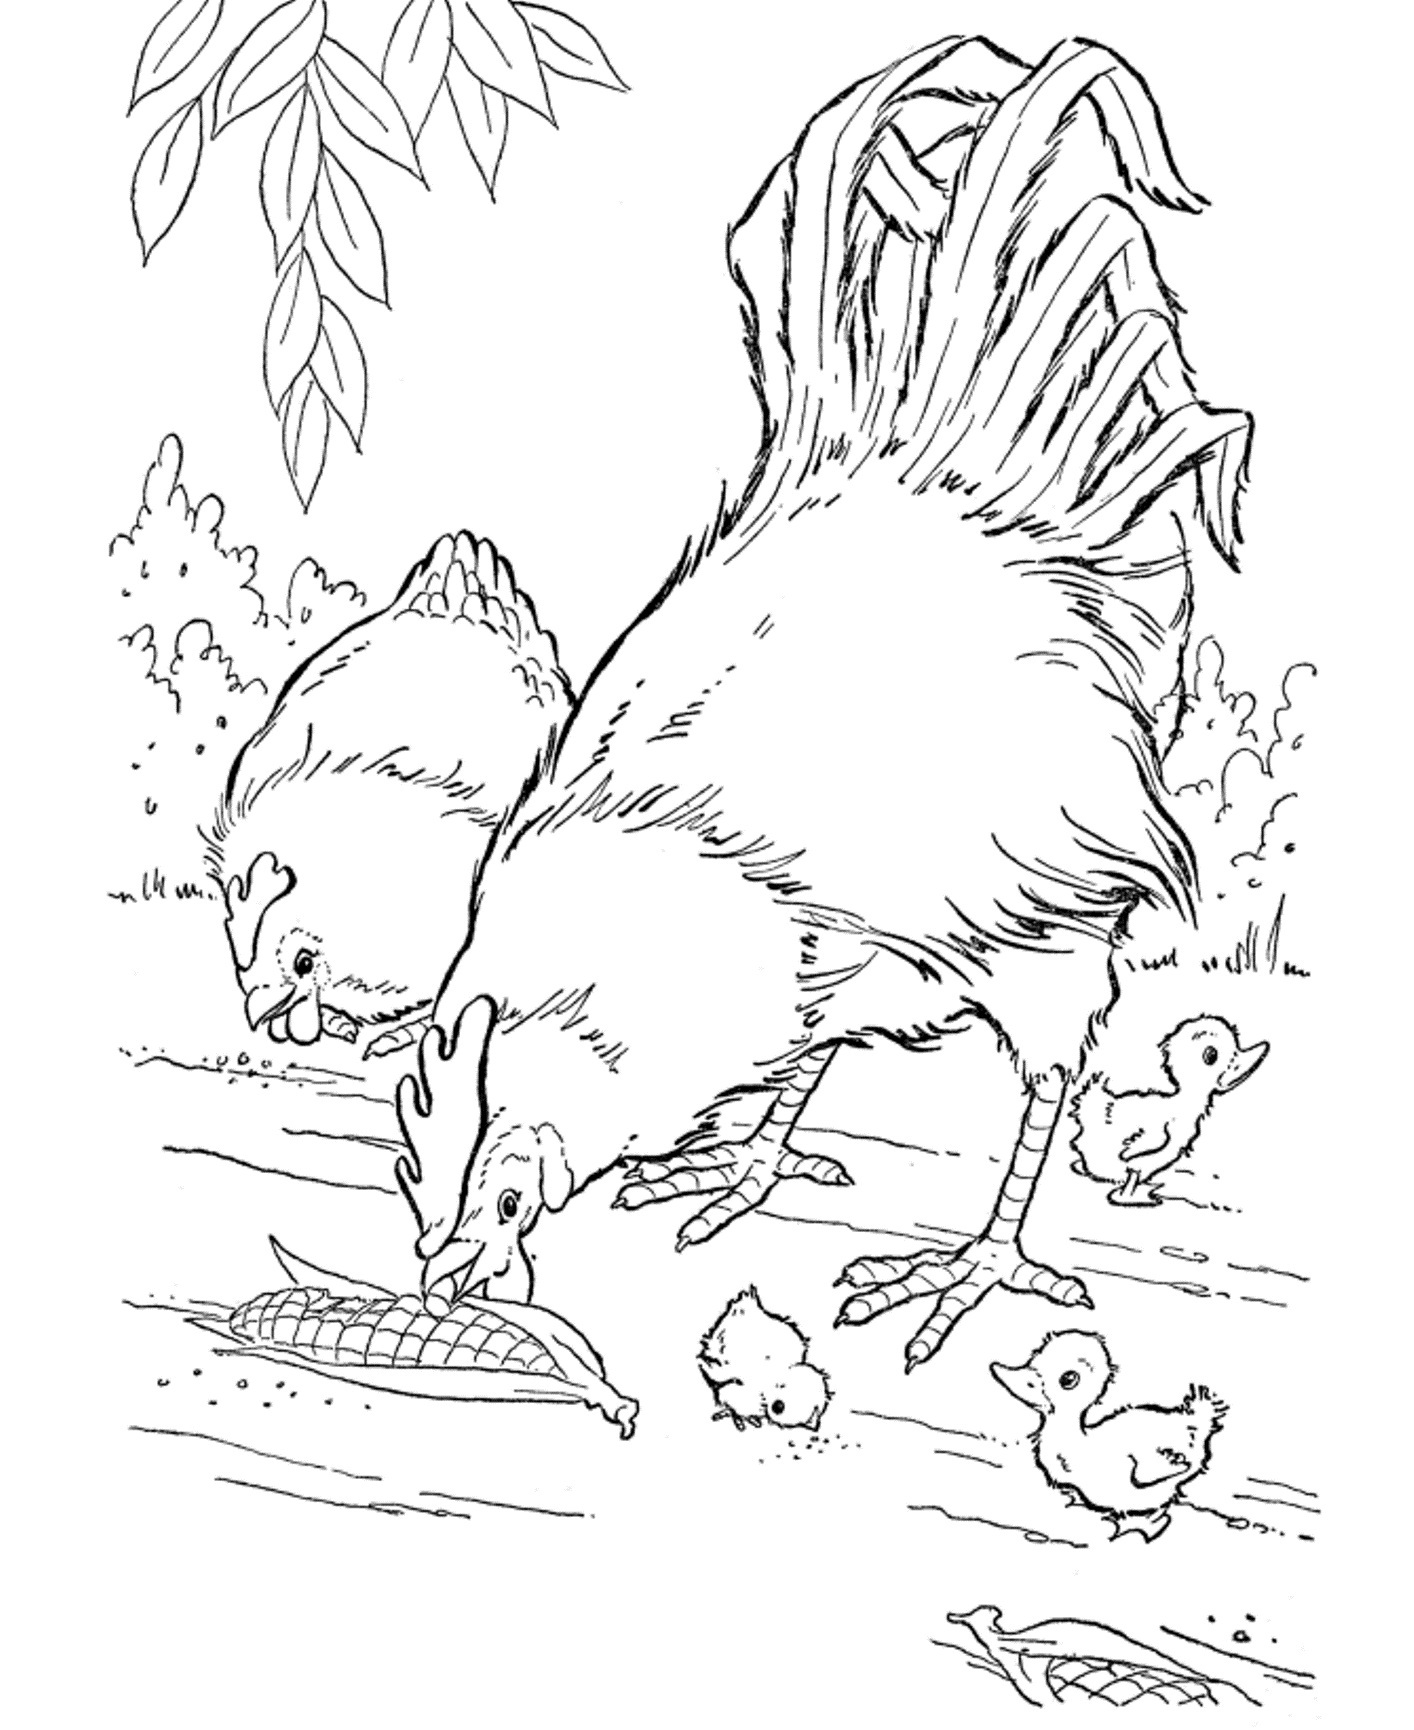 farm coloring sheet - Hobit.fullring.co